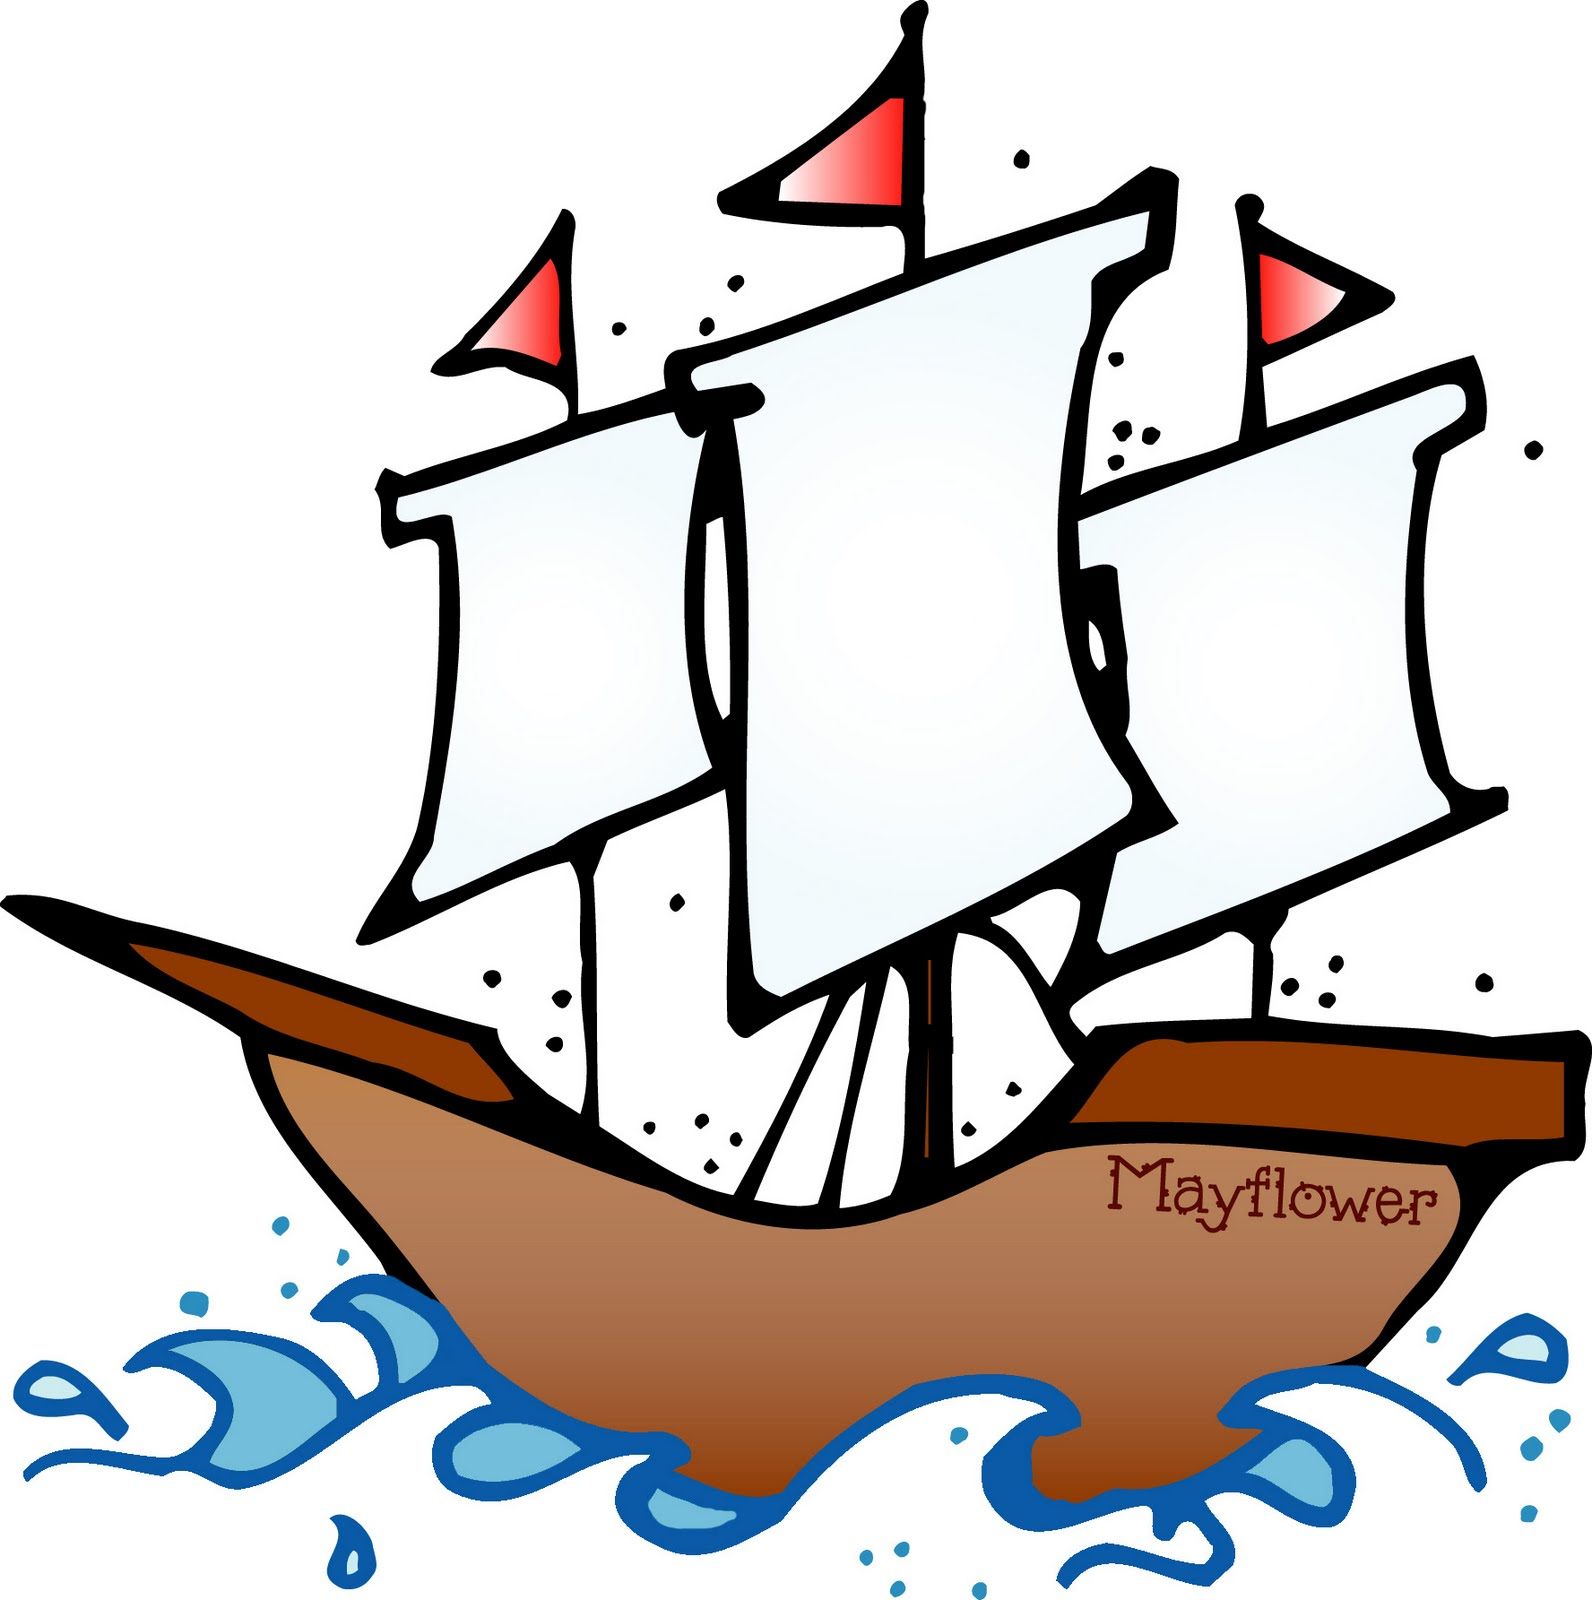 Pix For   Mayflower Clipart